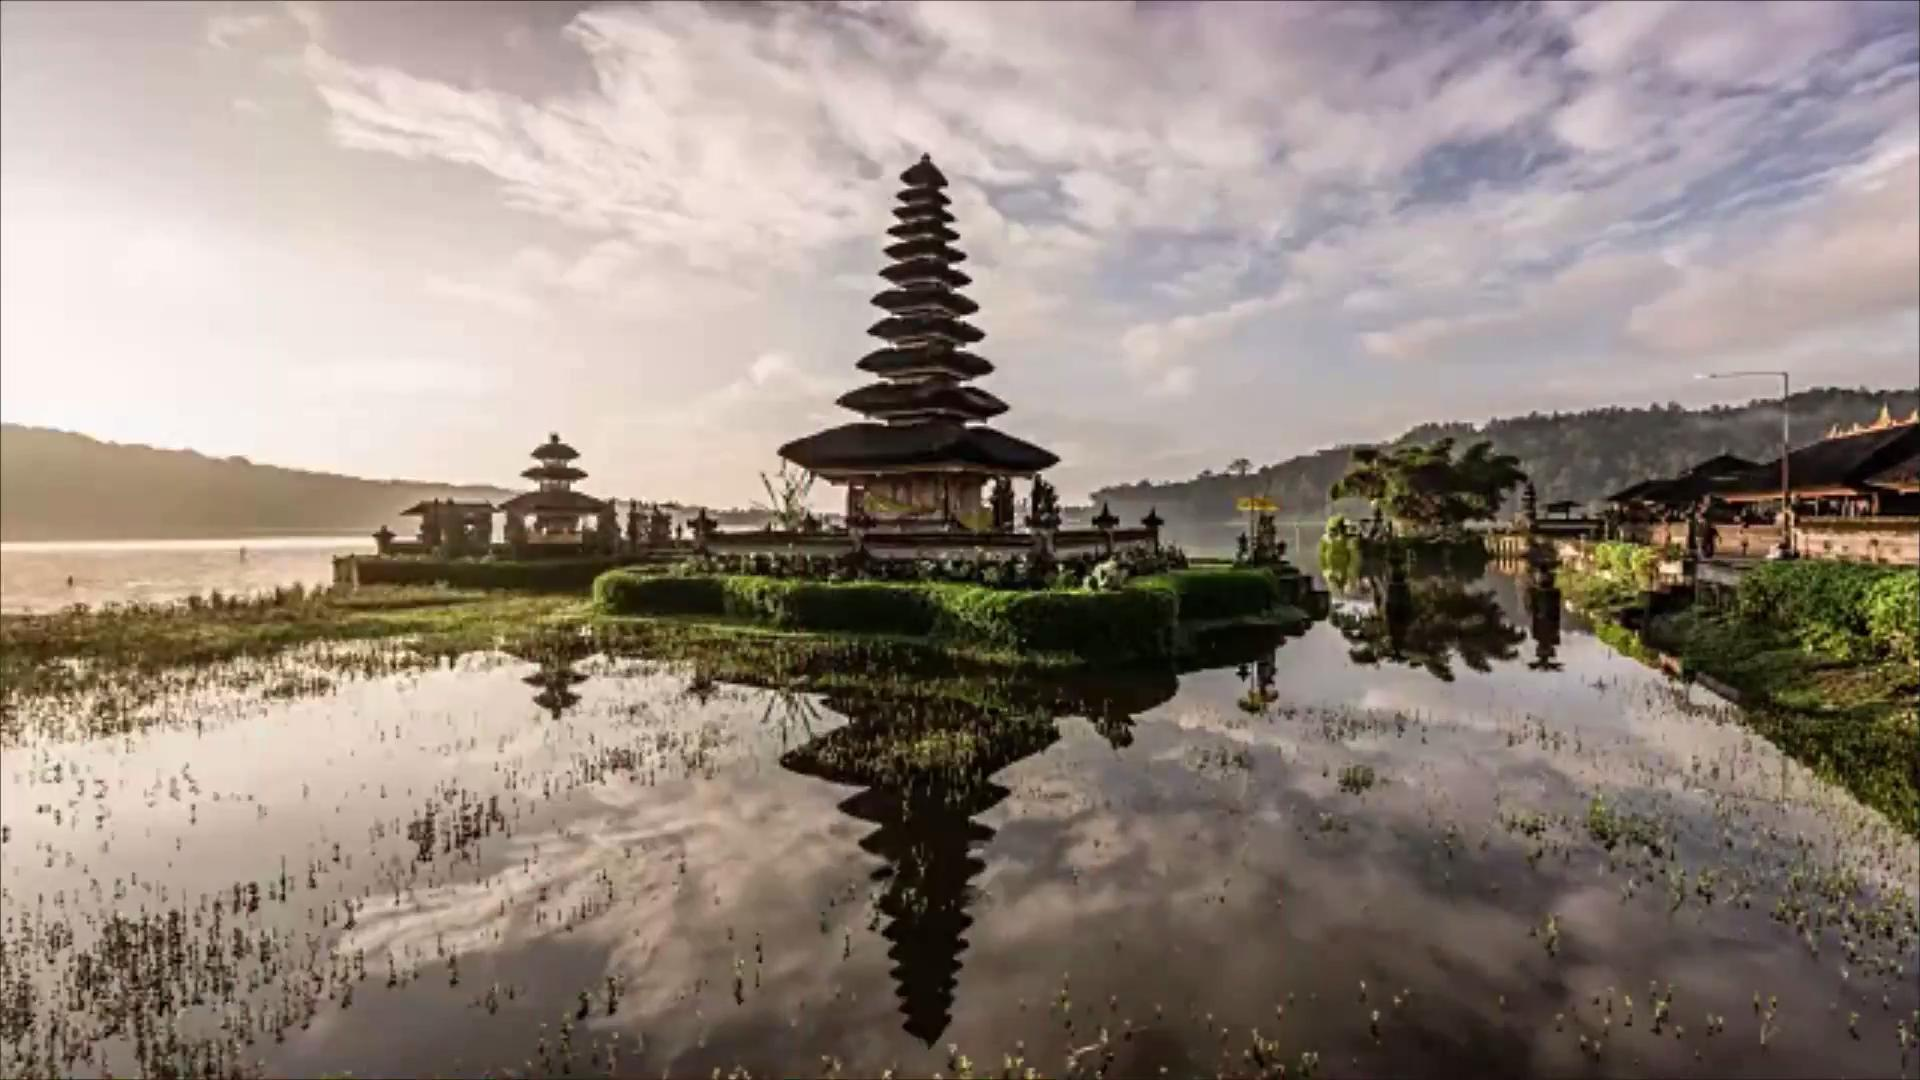 12-year-old gets in fight with mom, steals her card and runs away to Bali